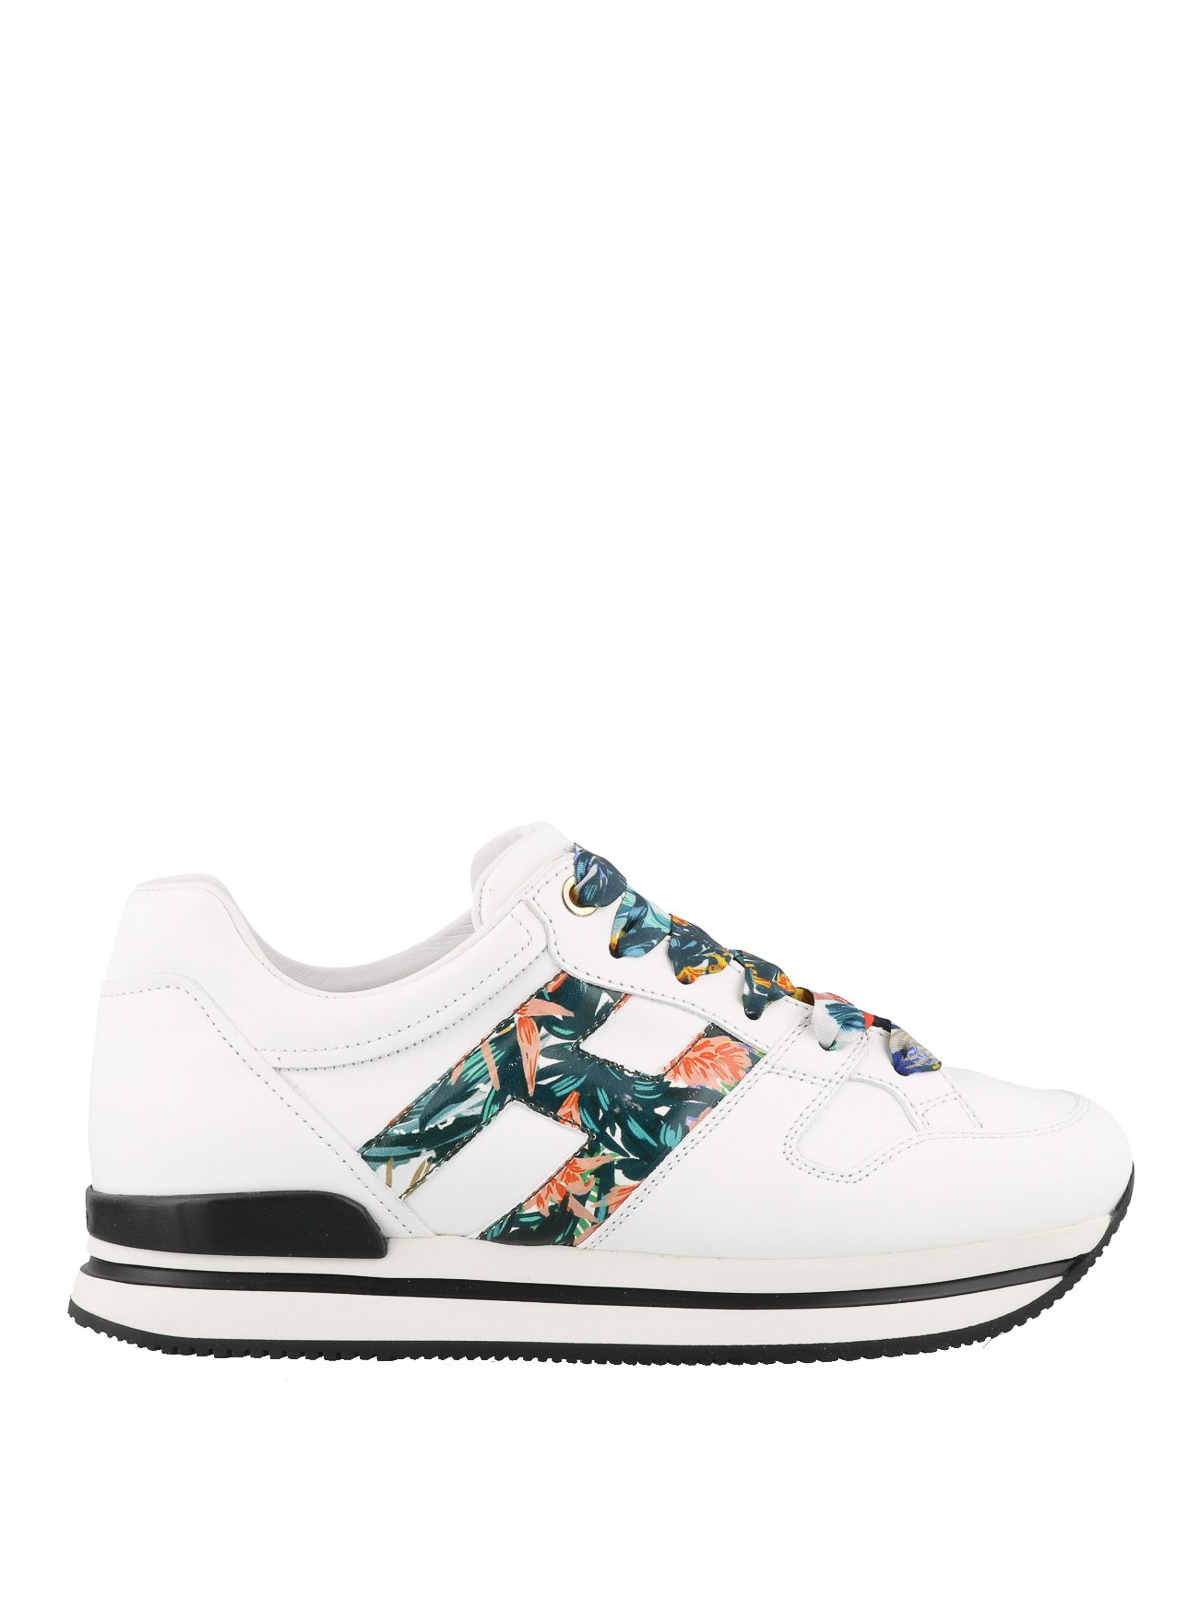 Hogan Botanical Print Low Top Sneakers In White